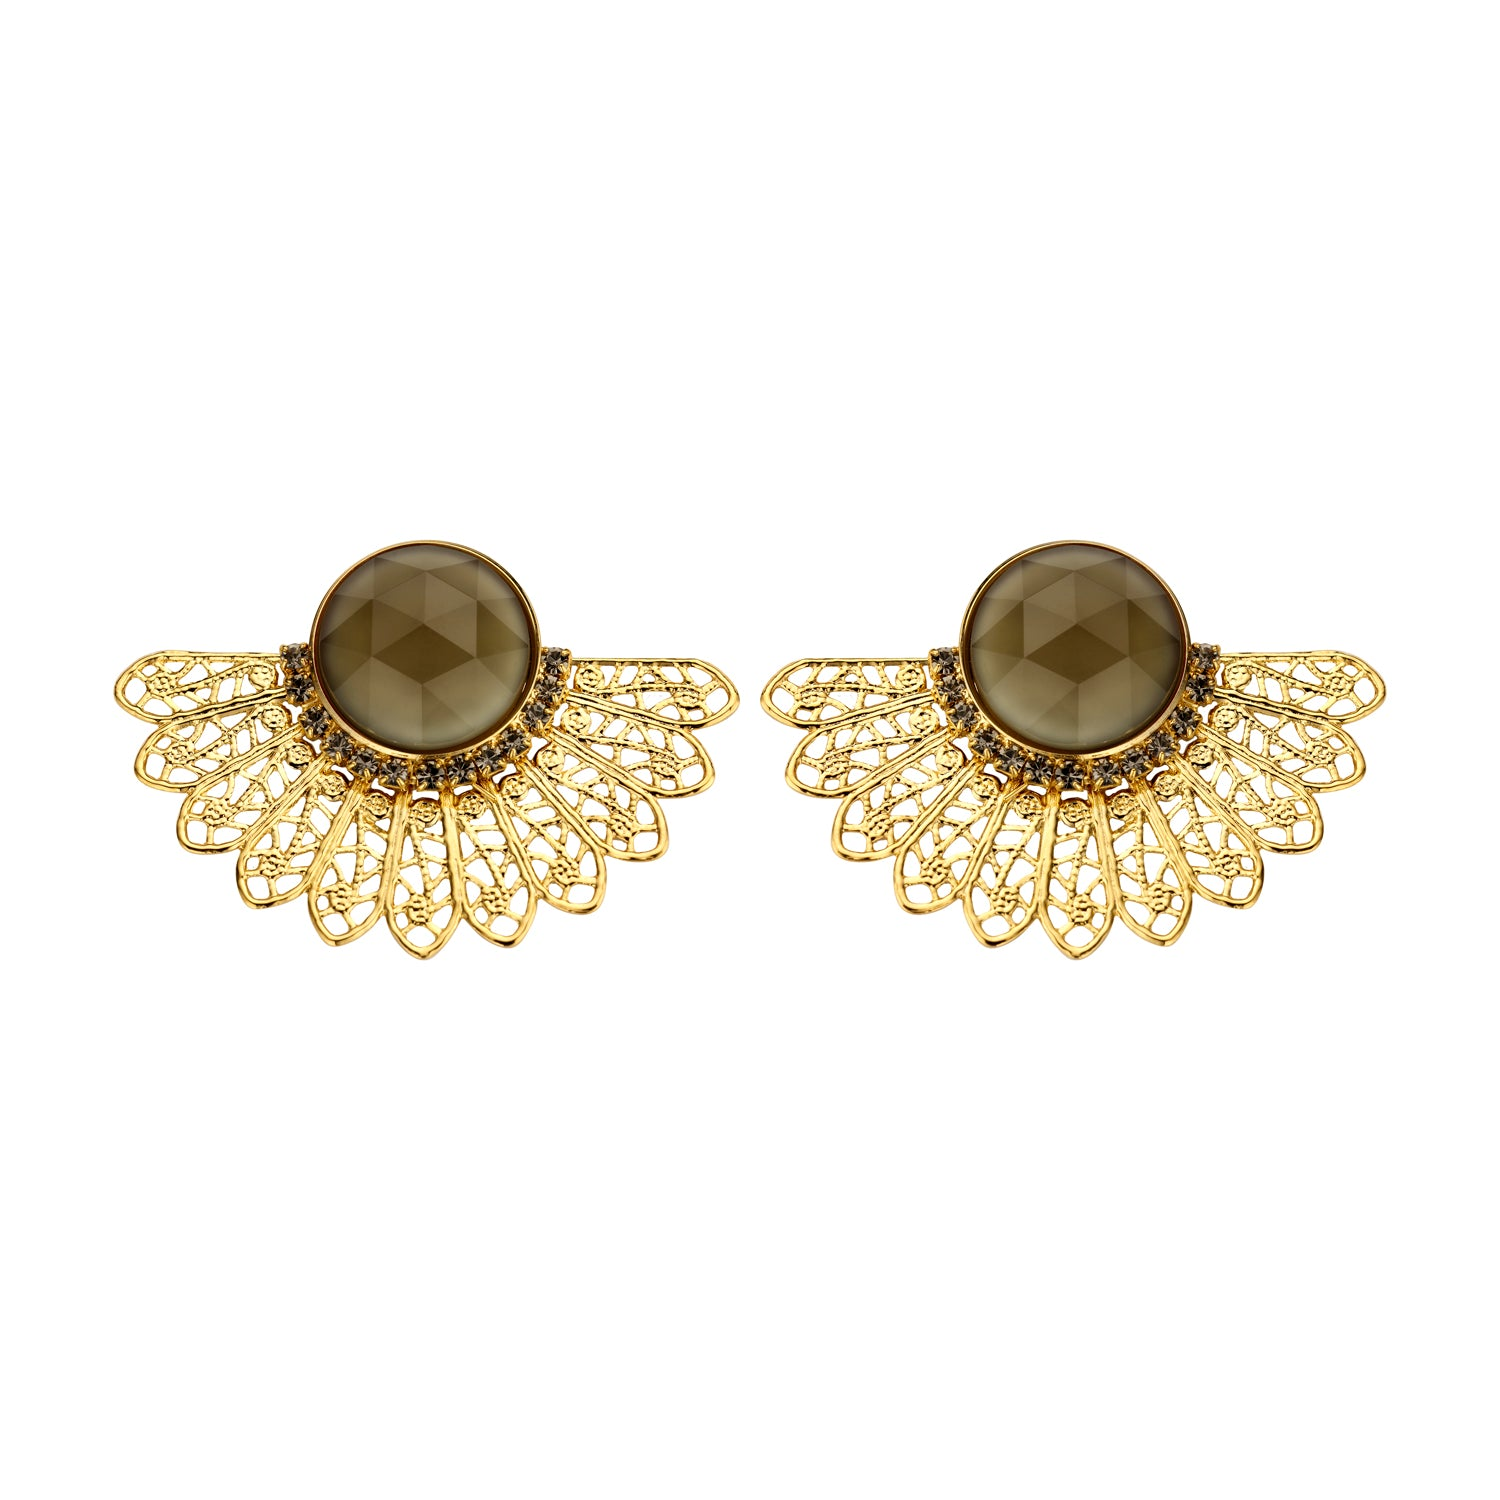 Van shortie kaki earrings